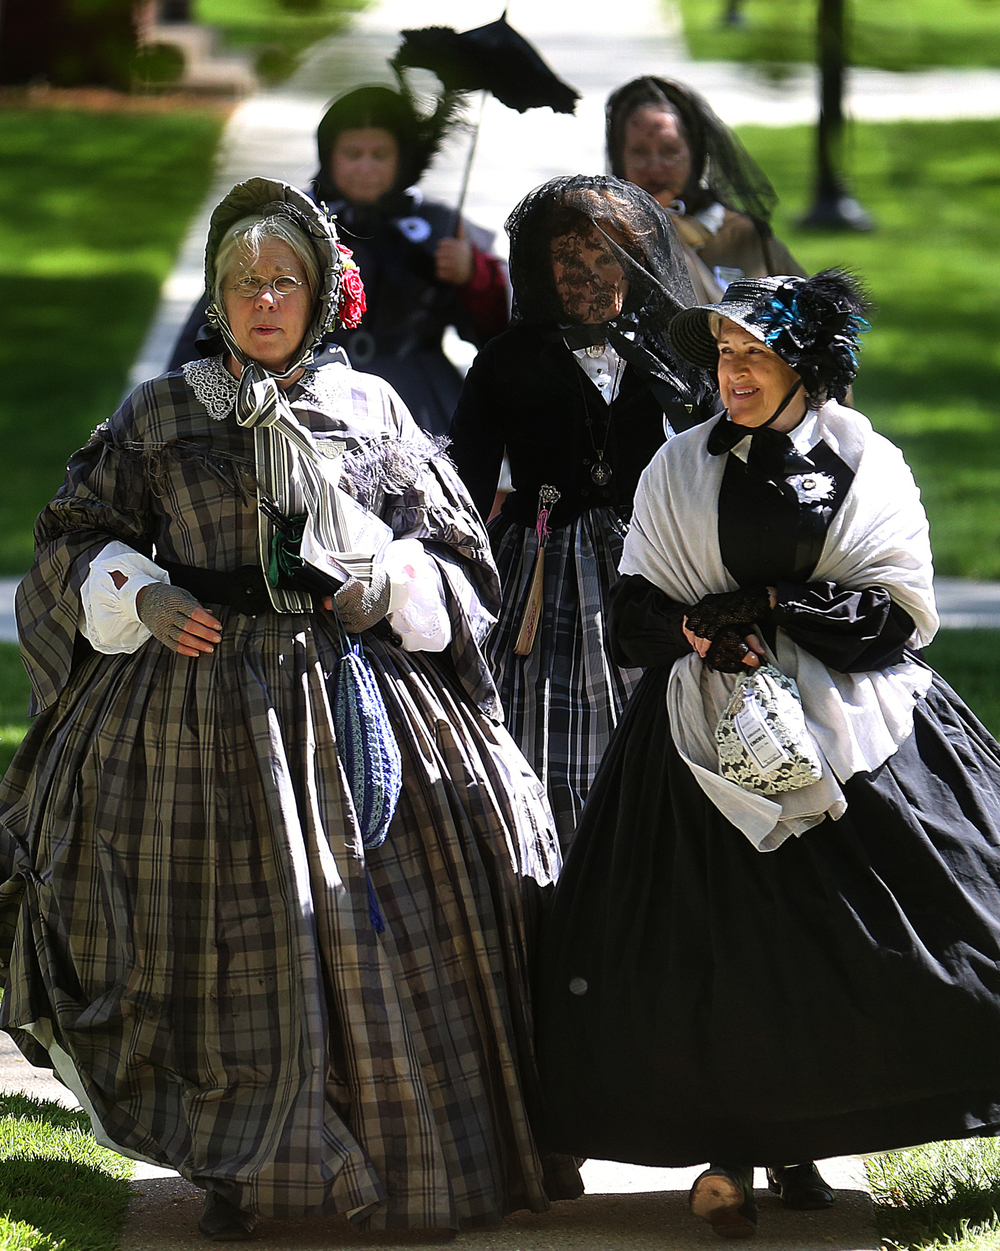 Members of the St. Louis, Mo. chapter of the Ladies Union Aid Society walk together to the Brinkerhoff Mansion and the presentation on Civil War era textiles Friday May 1, 2015.The presentation was part of the Lincoln funeral re-enactment events. David Spencer/The State Journal-Register